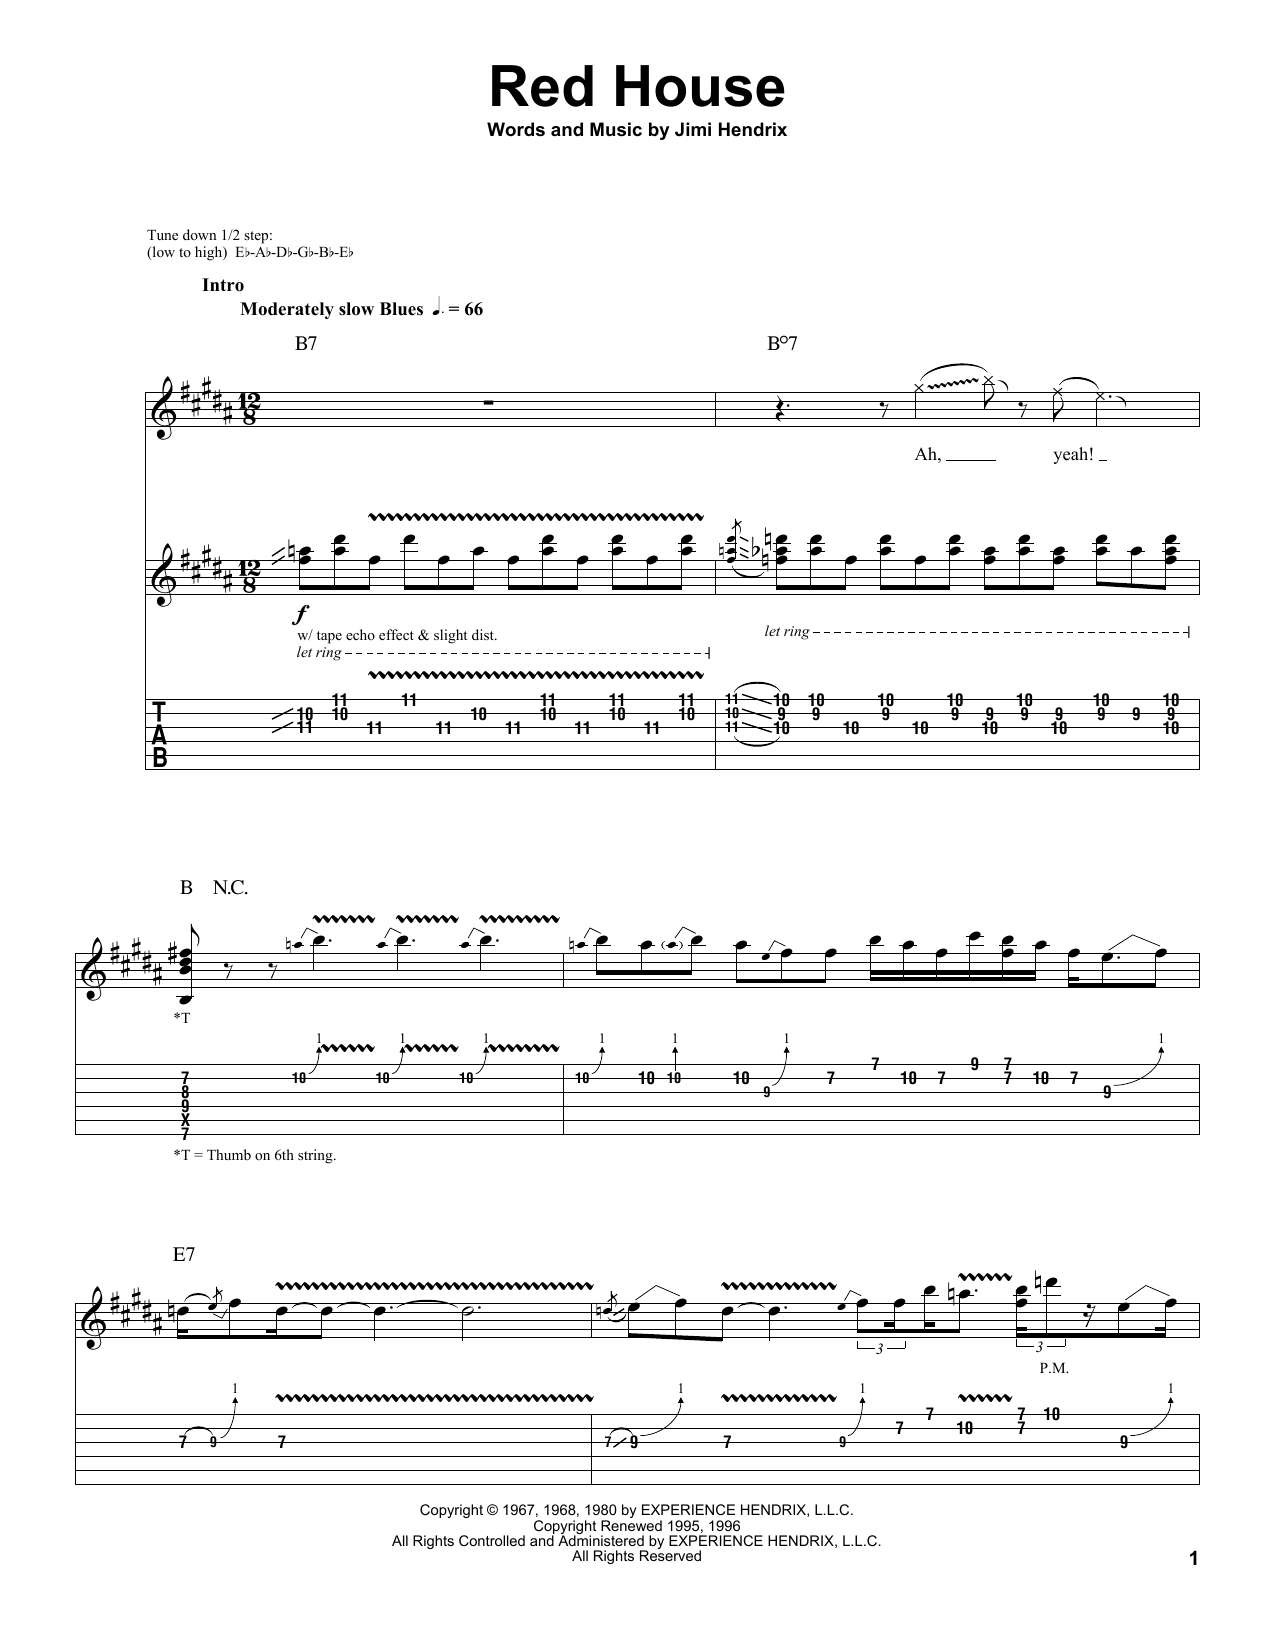 Jimi Hendrix Red House Sheet Music Notes Chords Printable Pop